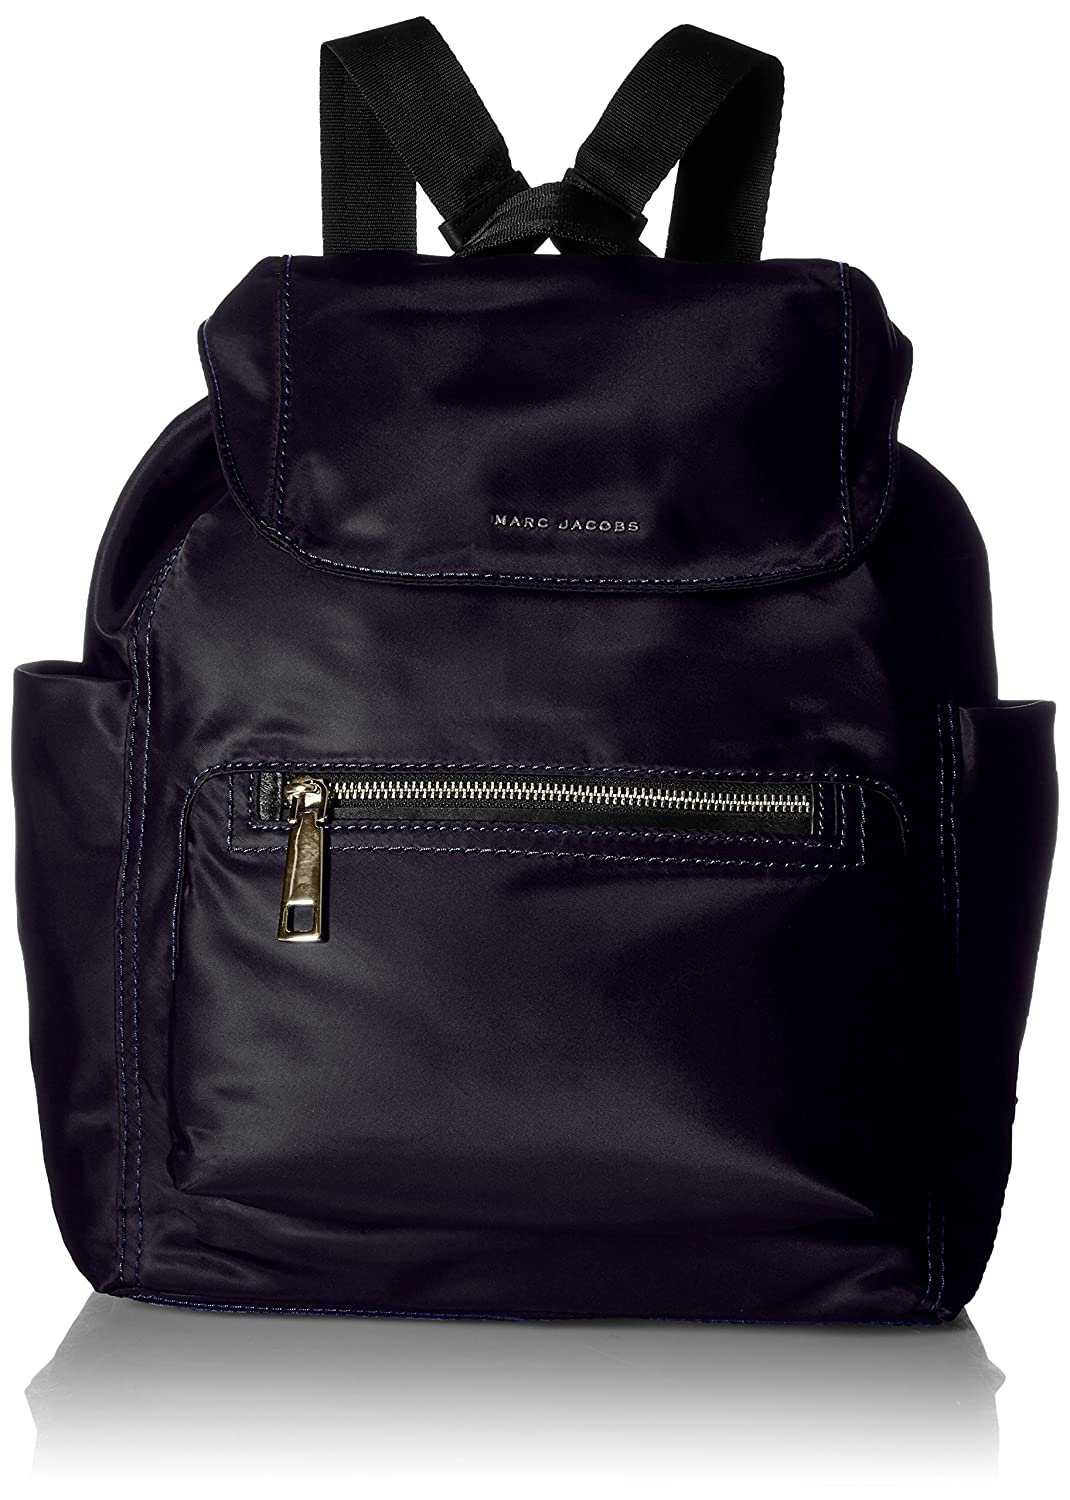 $147.52 (was $461.65) Marc Jacobs Easy Back pack, Amalfi Coast